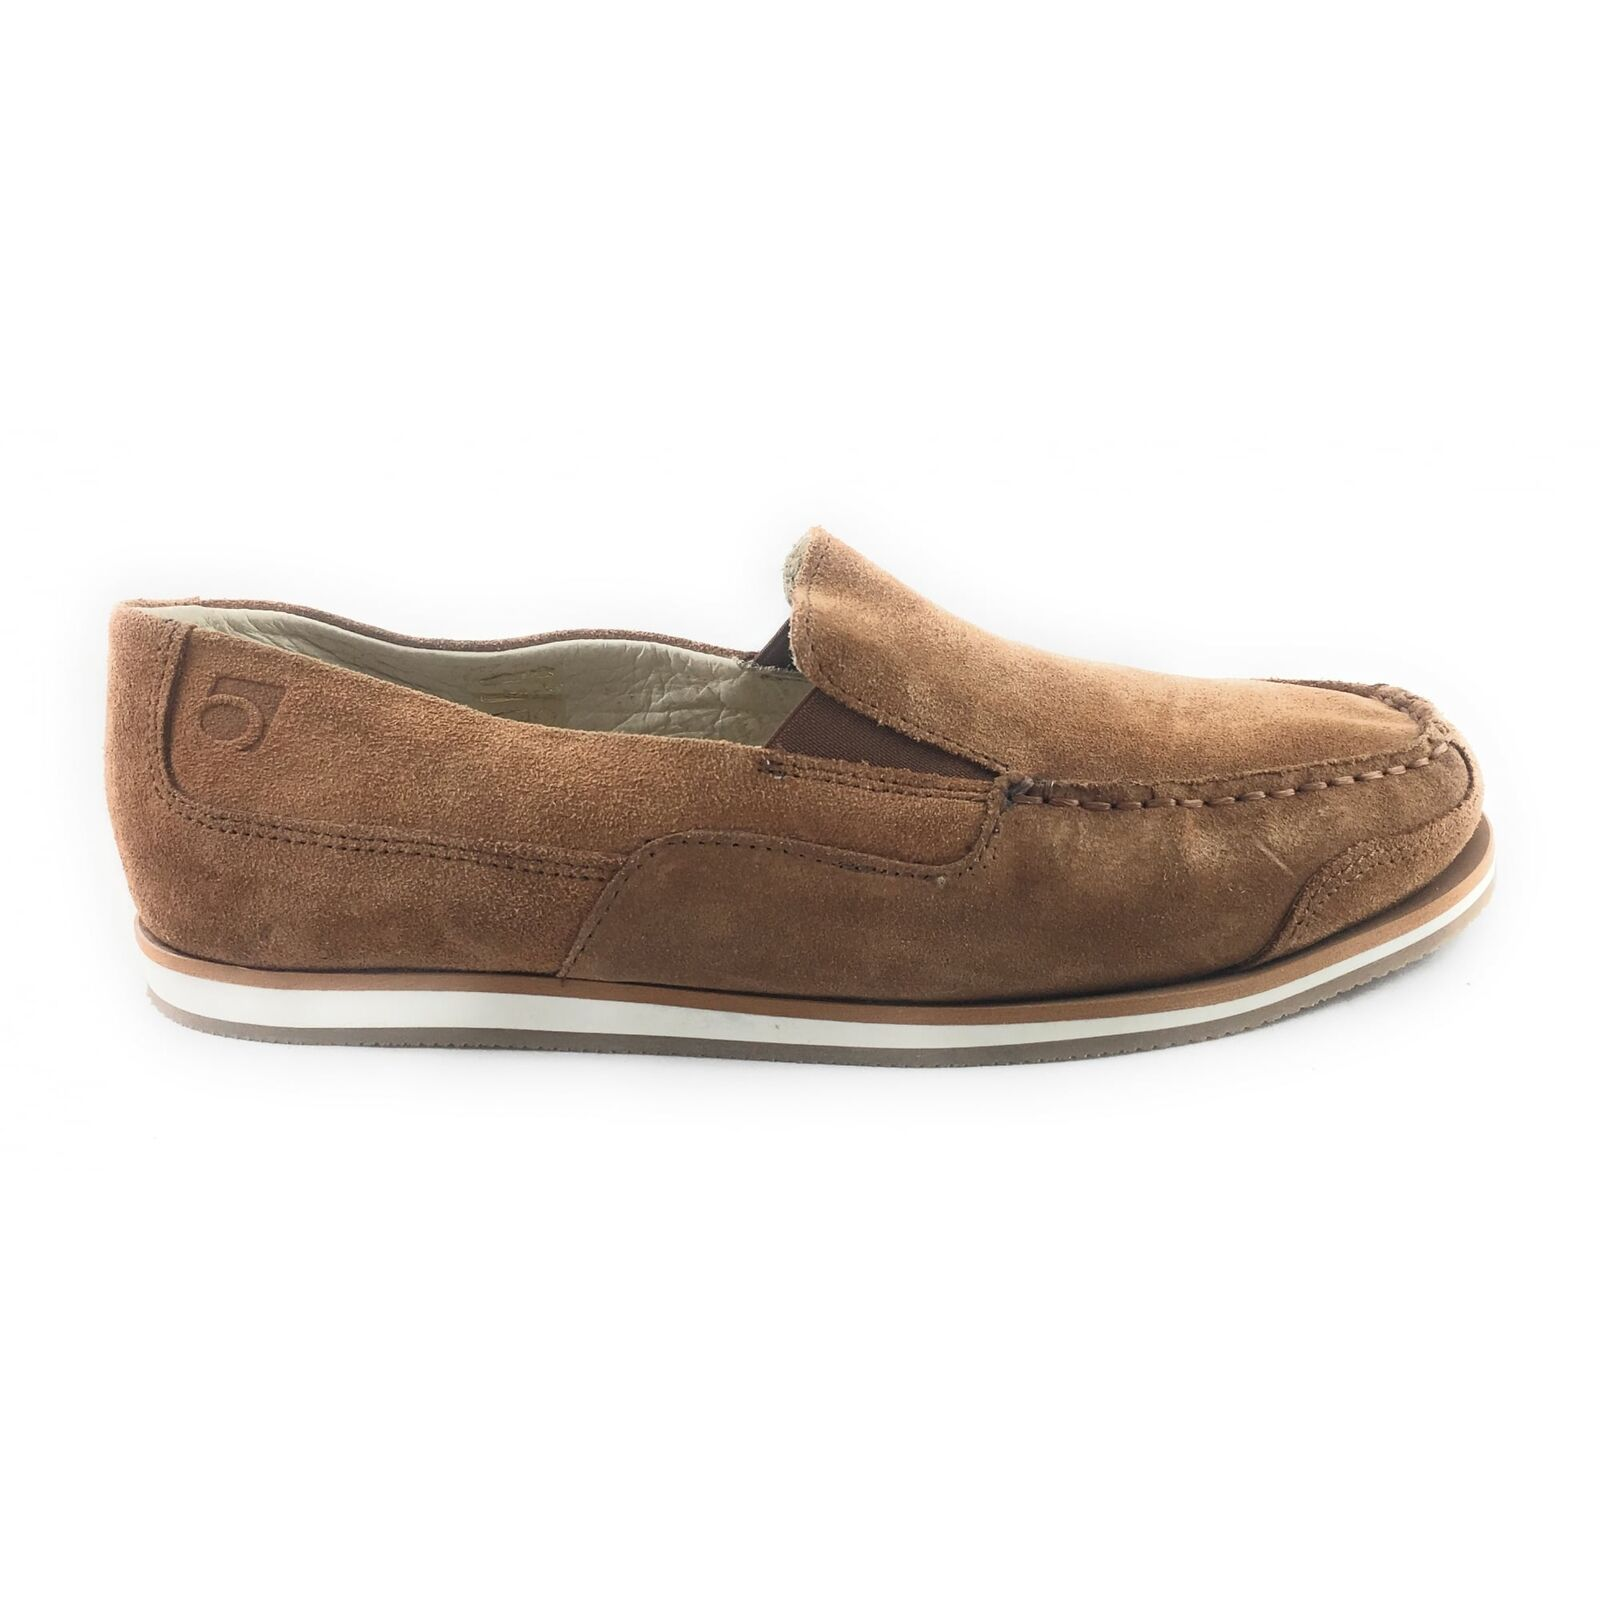 Rohde 5821 Havanna Tan Suede Slip-On Mens shoes